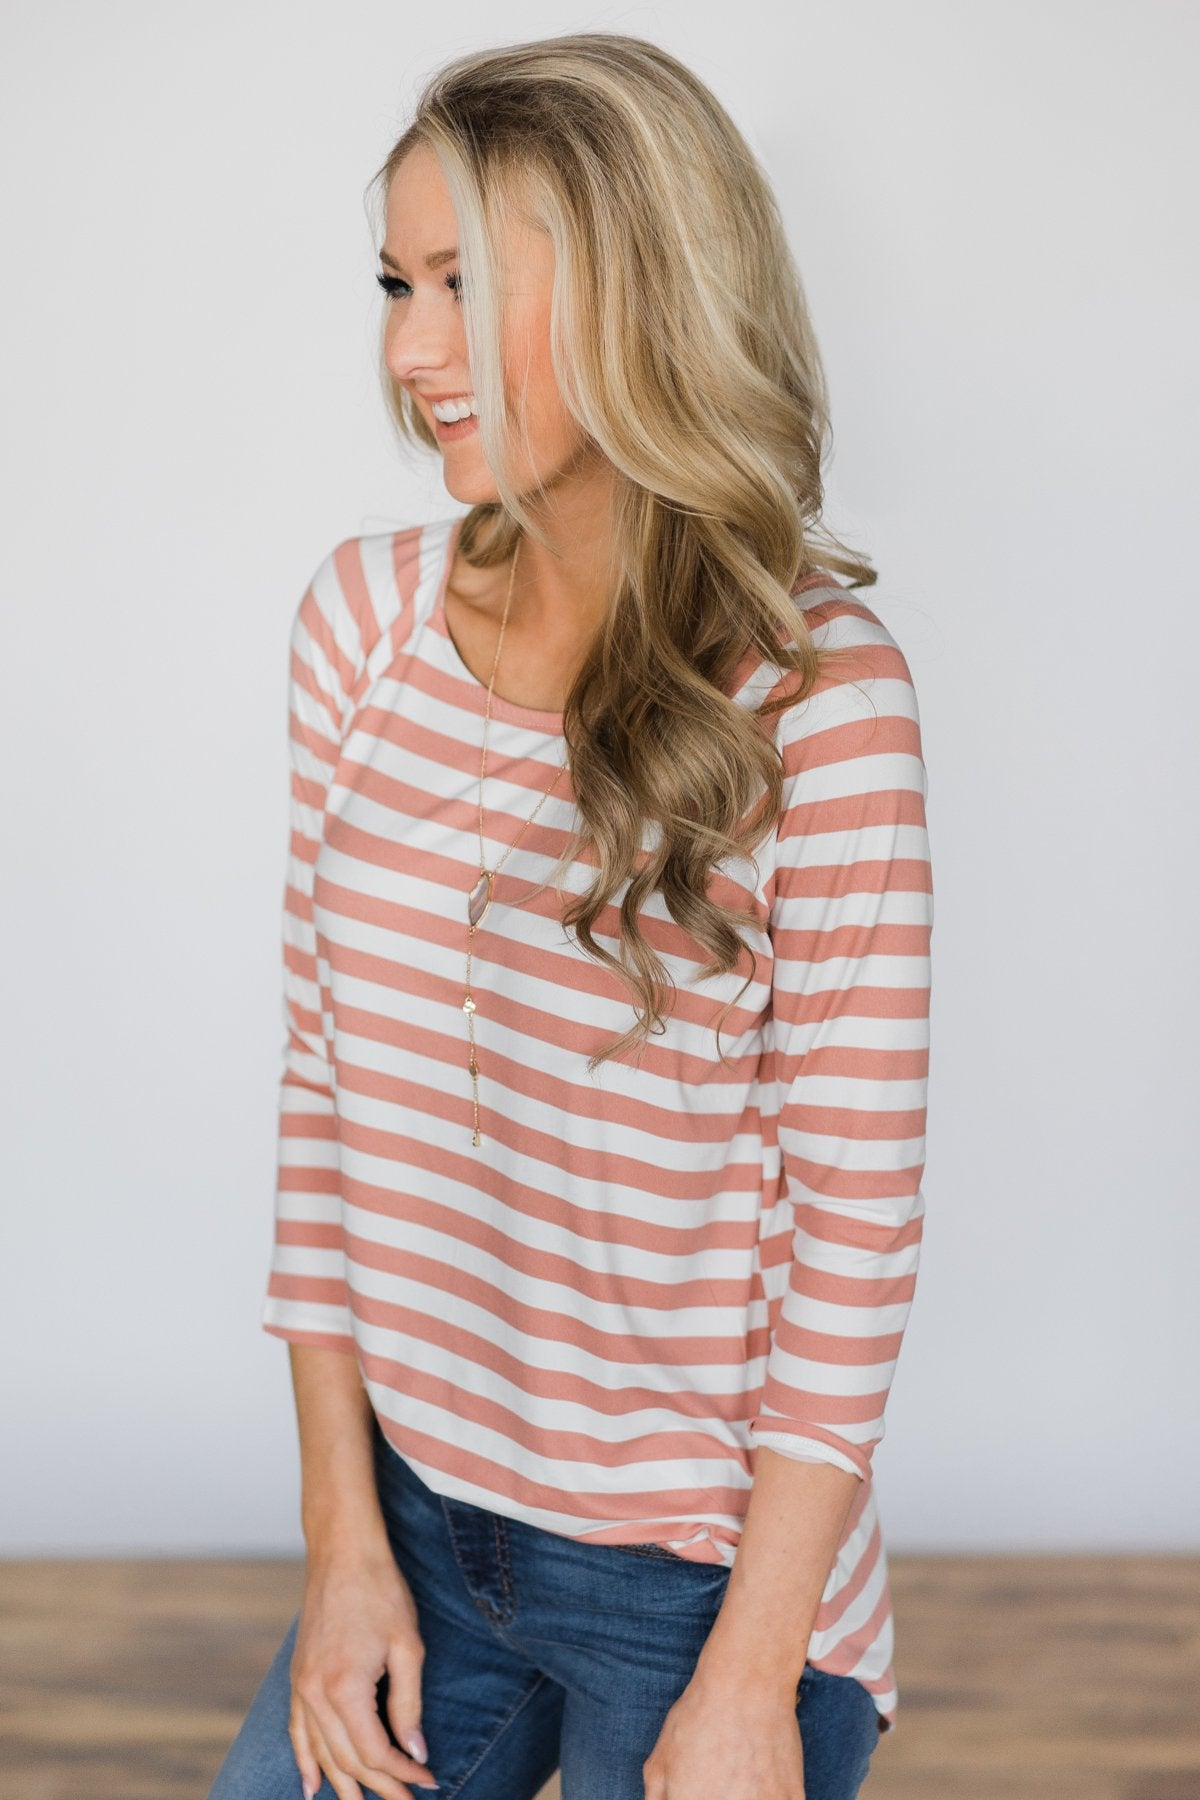 Comes Naturally Striped Top